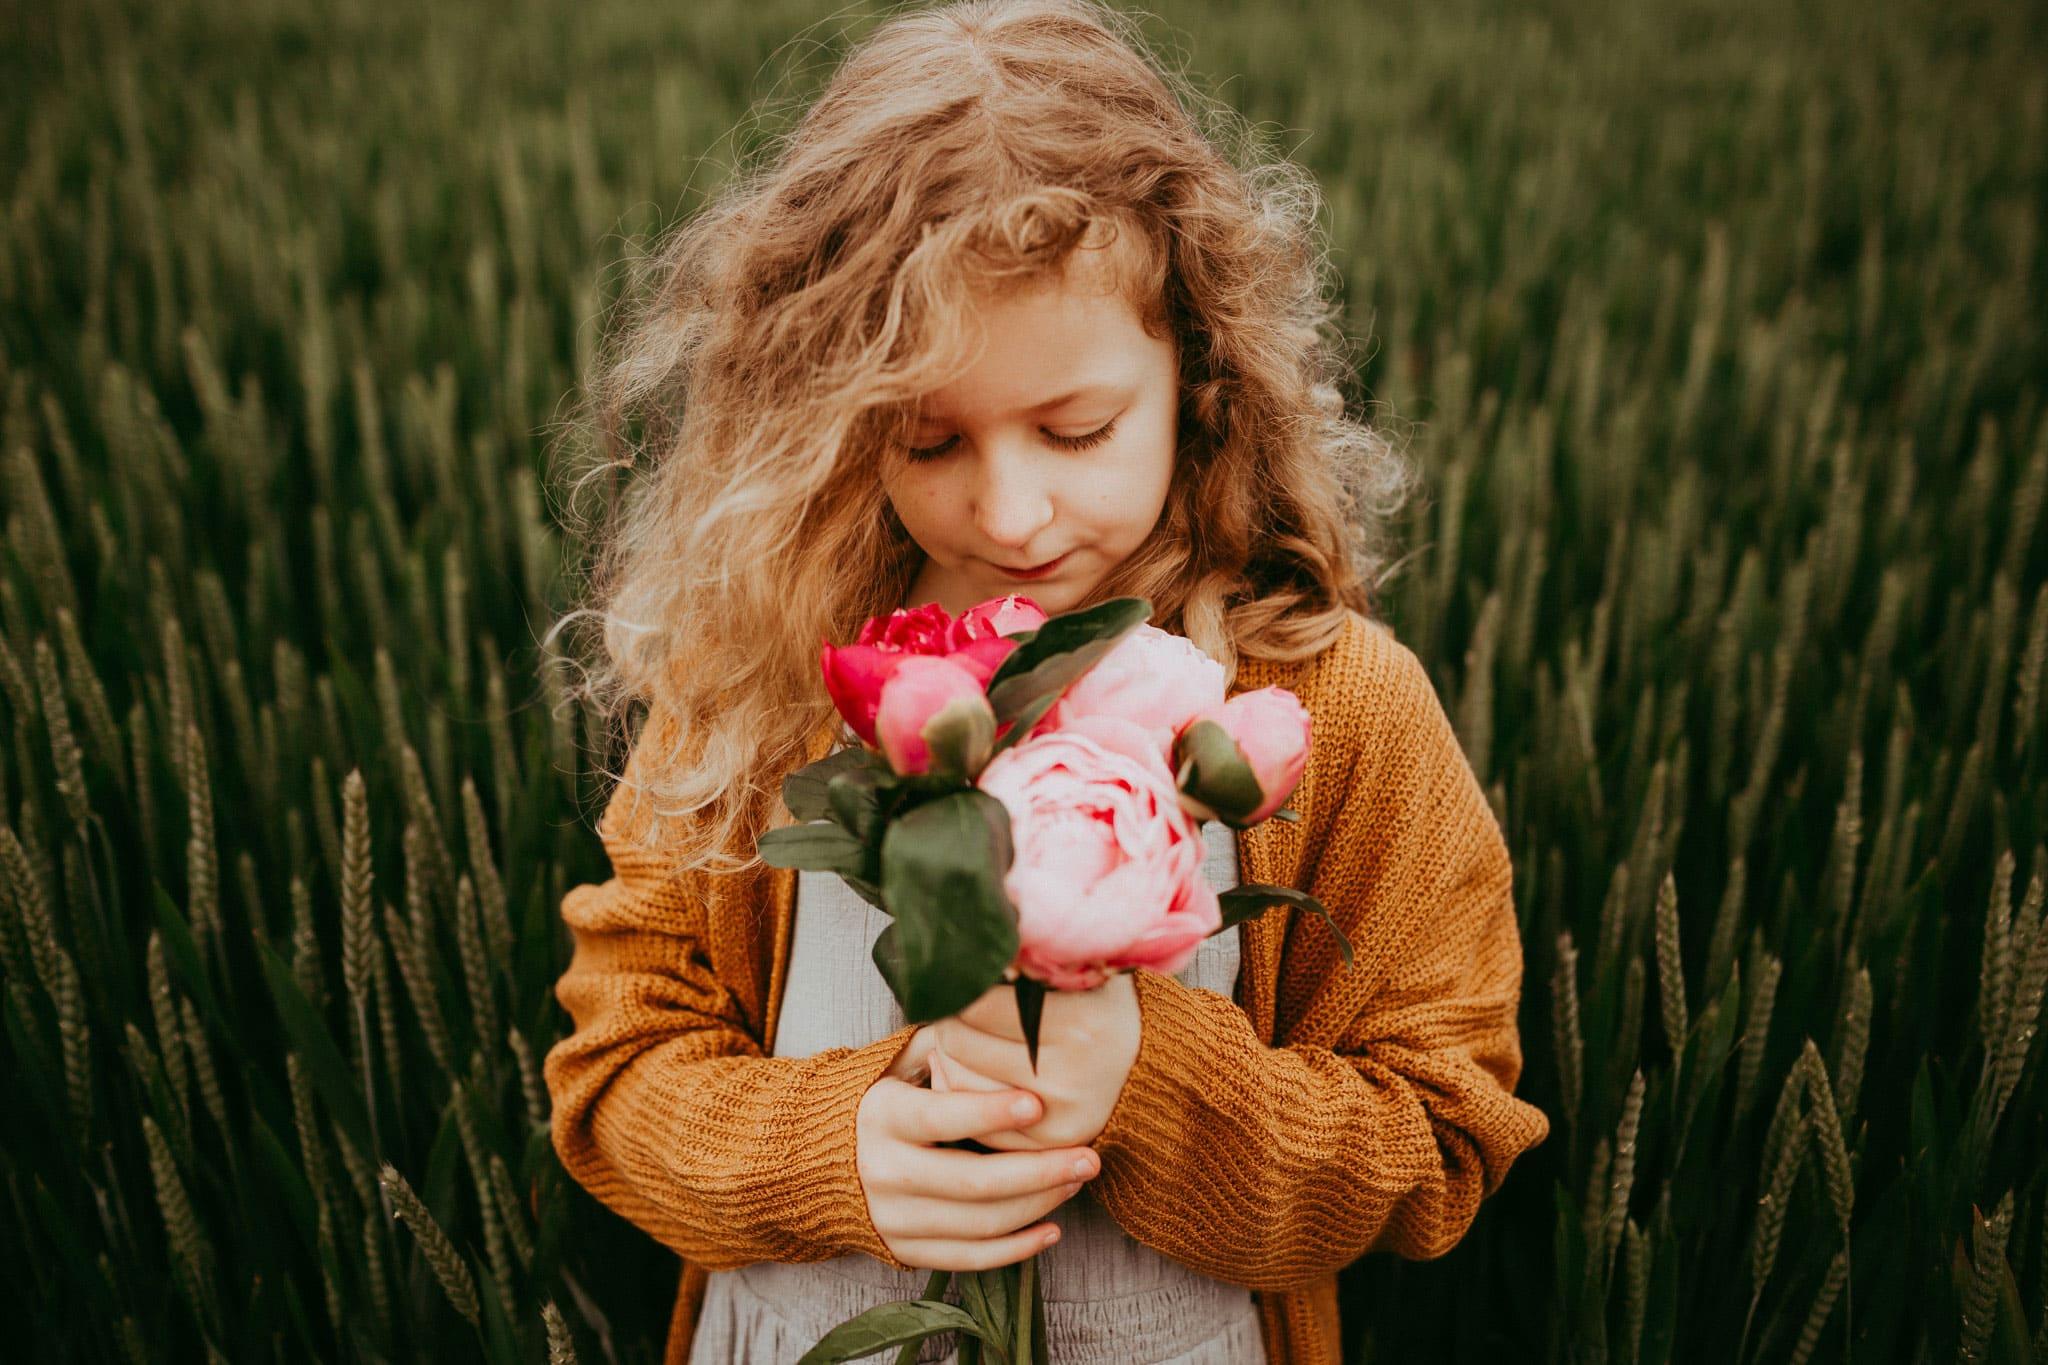 little girl holding flowers on a cloudy day